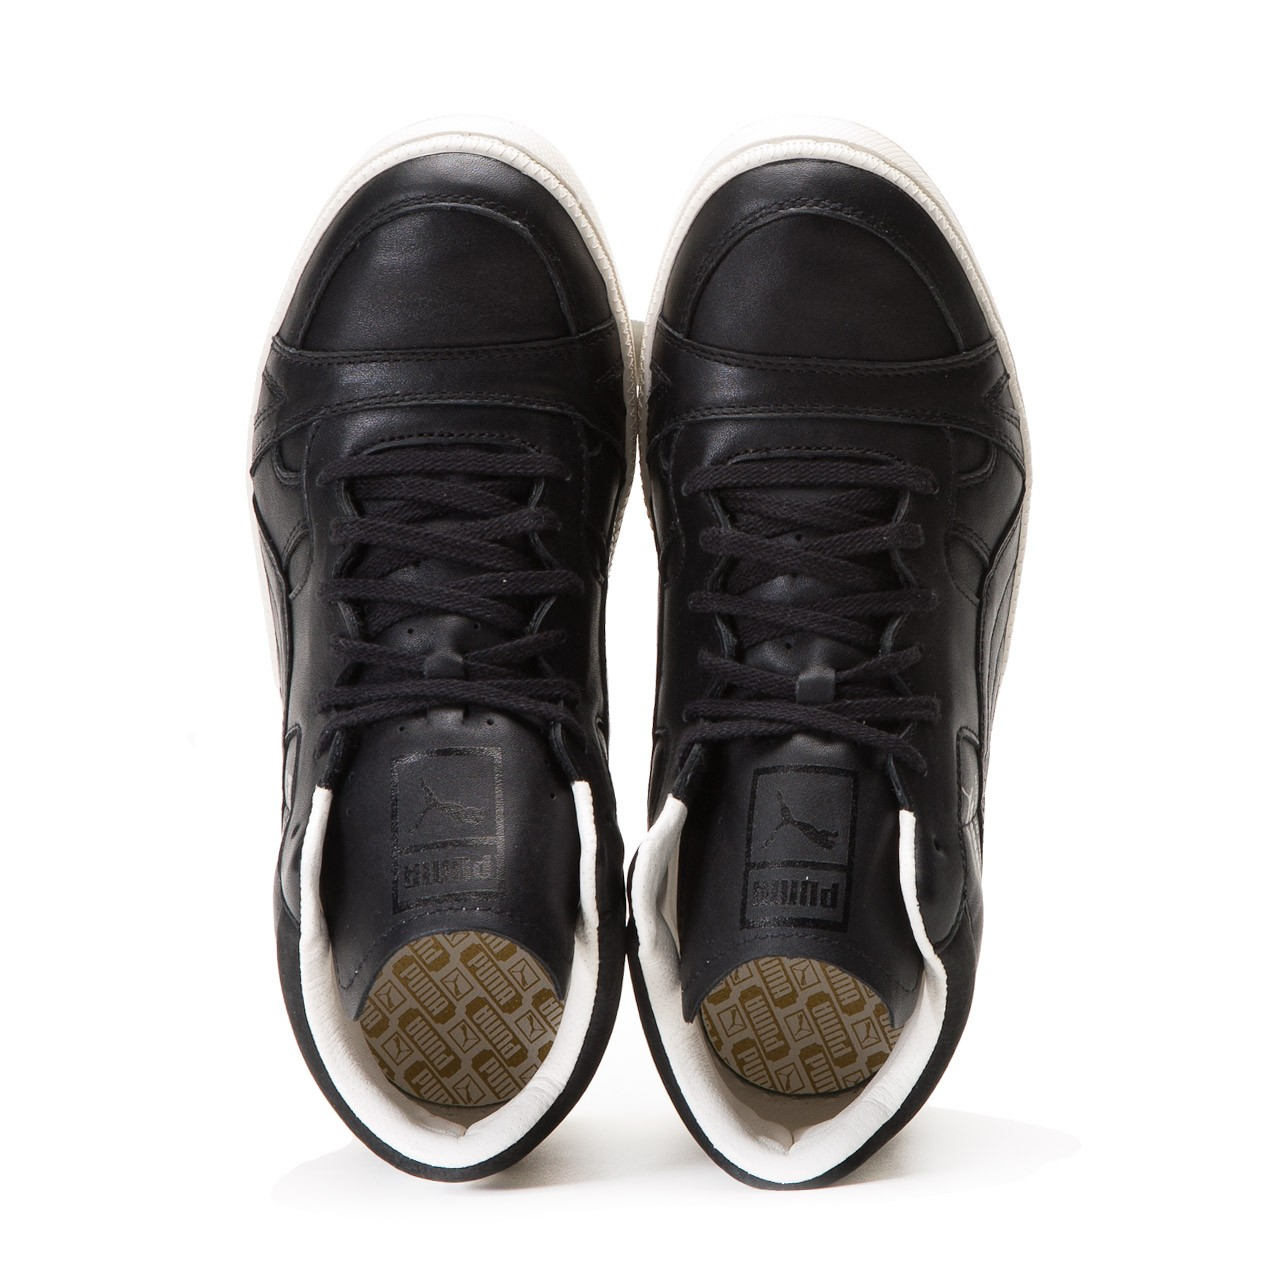 ccae21d05cde The Puma Becker Leather Black is now available for €129.90 at Allike Store.